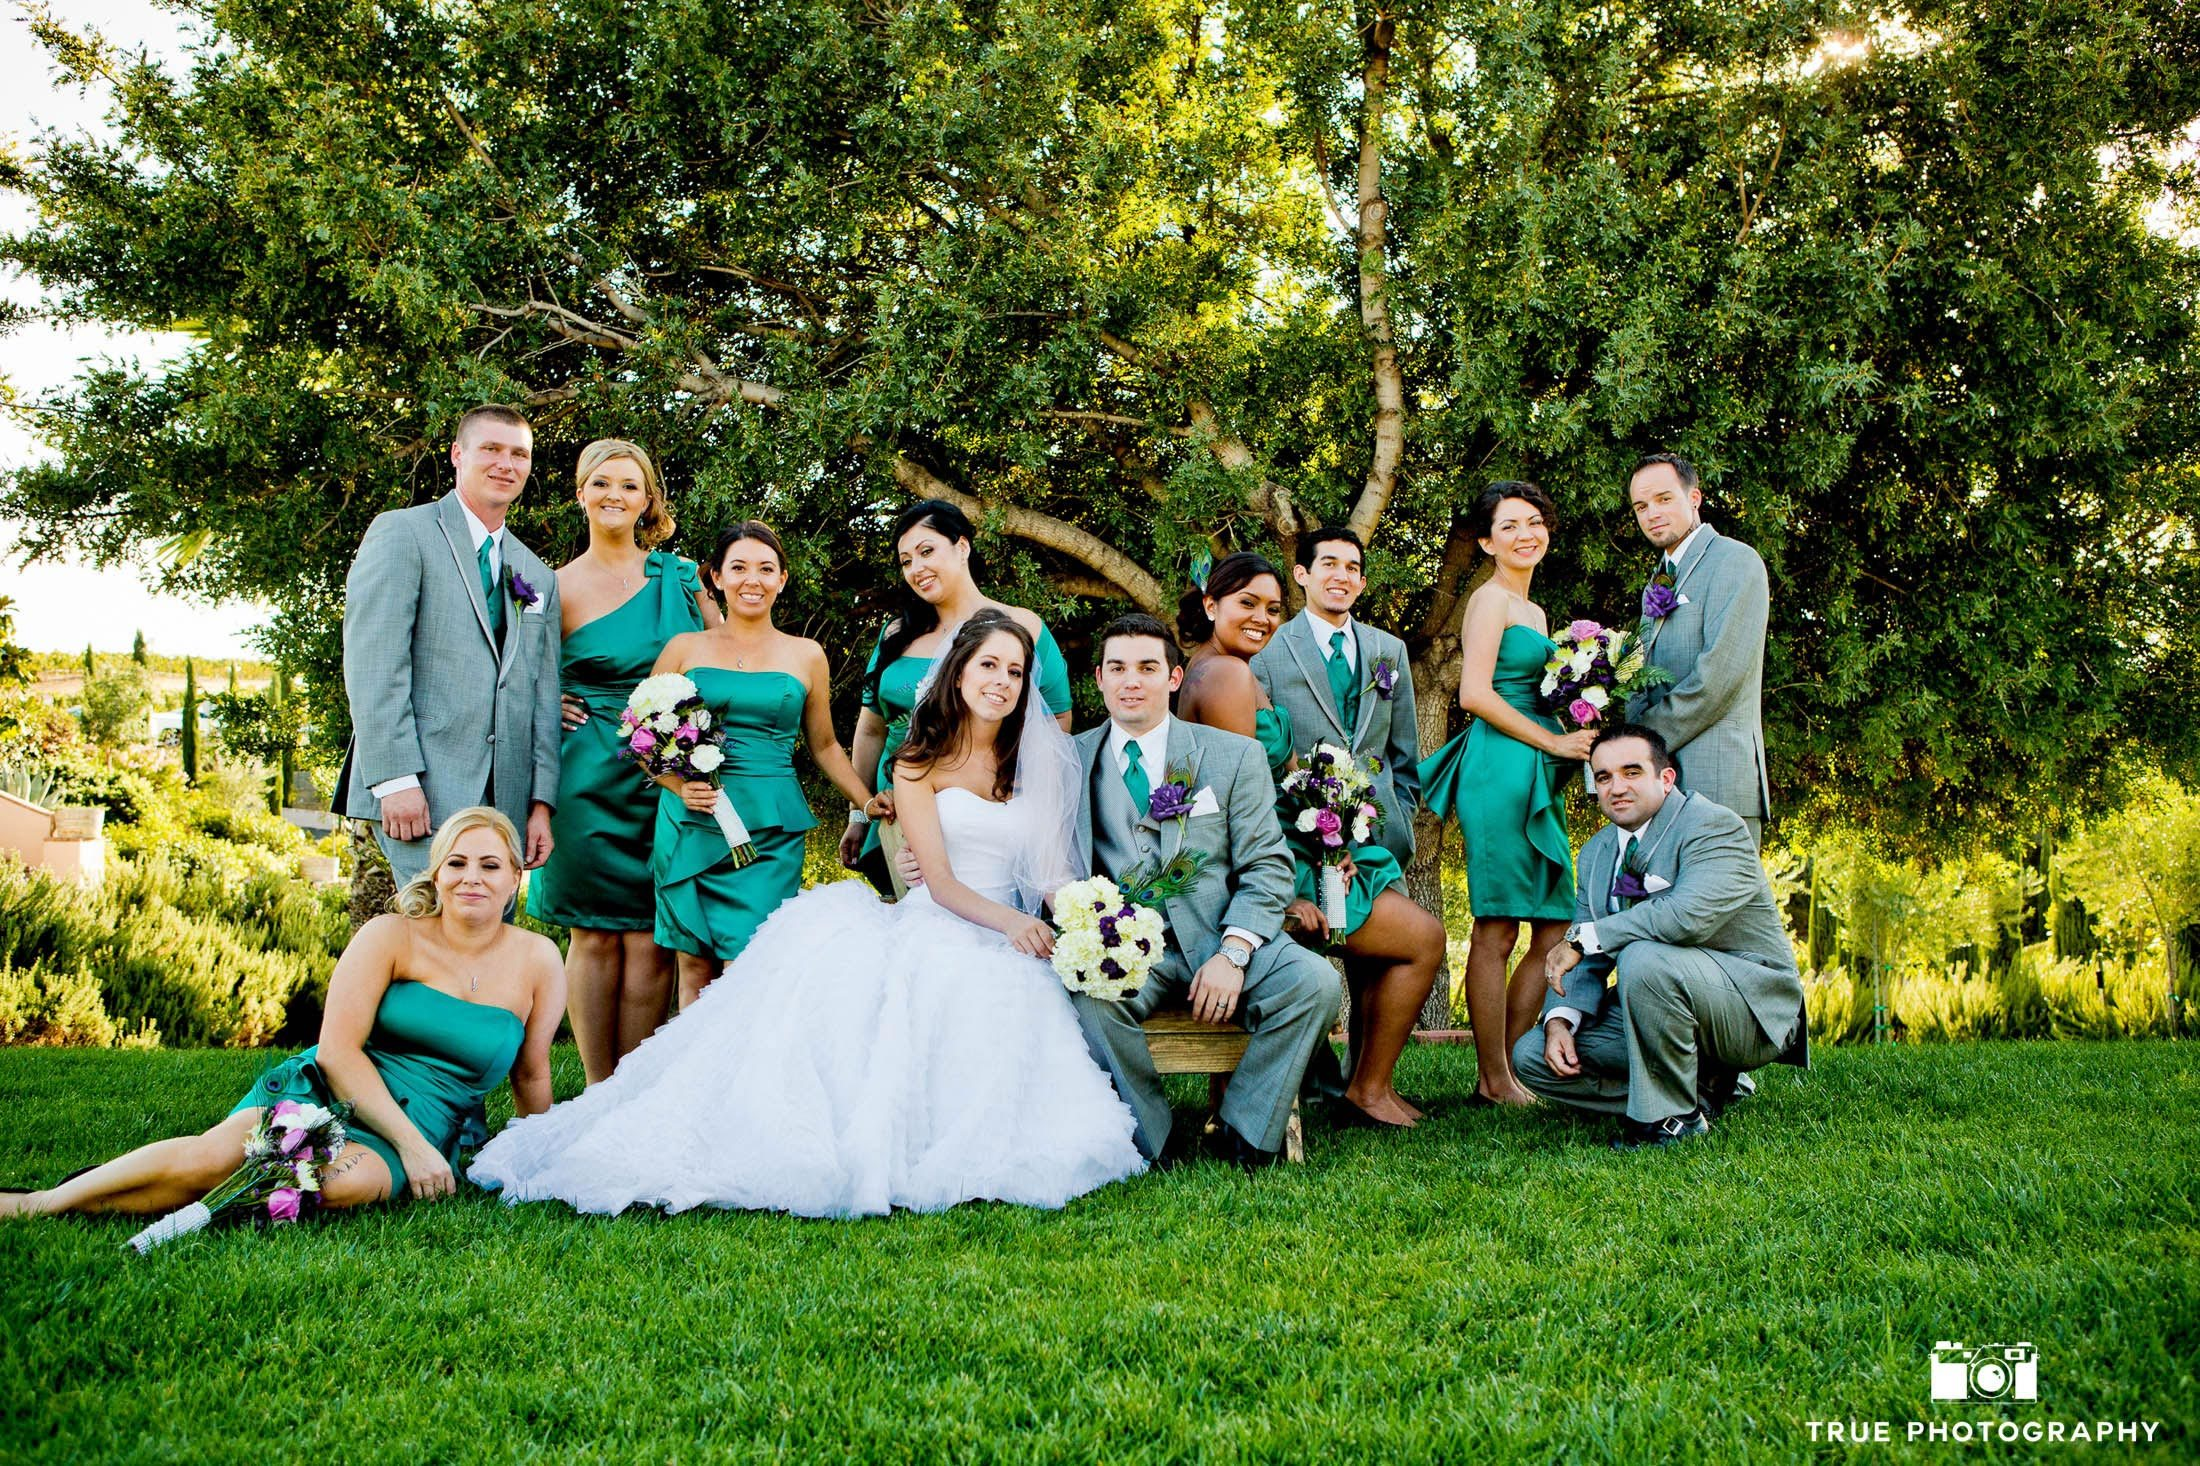 Cool bridal party dressed in green at winery wedding